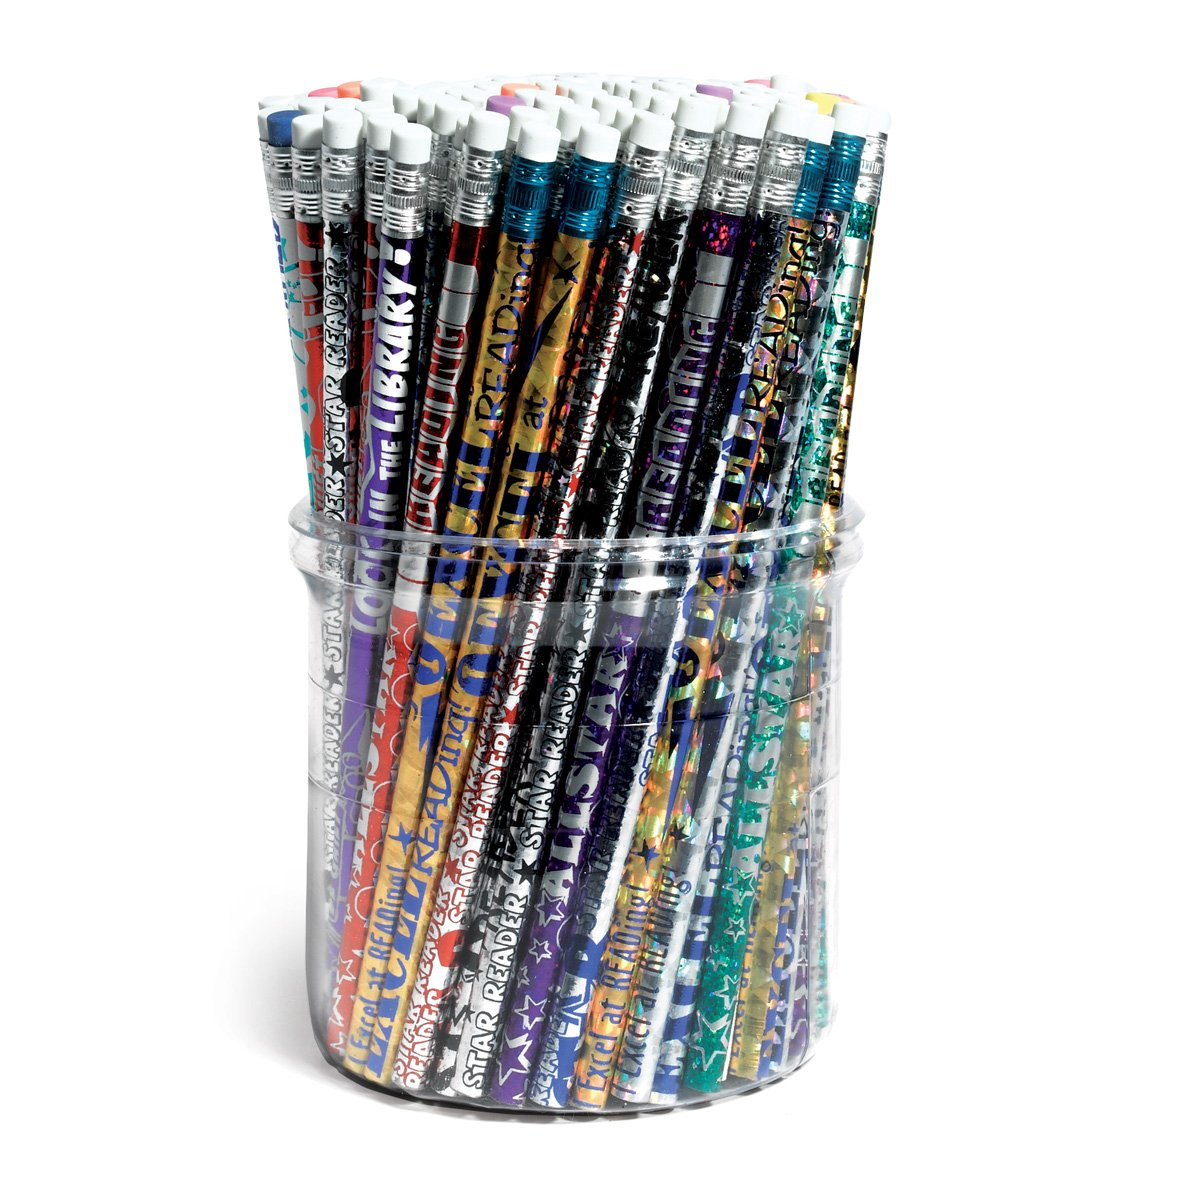 Reading Pencil Tub, 144-Piece #2 Pencils, Assorted Designs and Colors